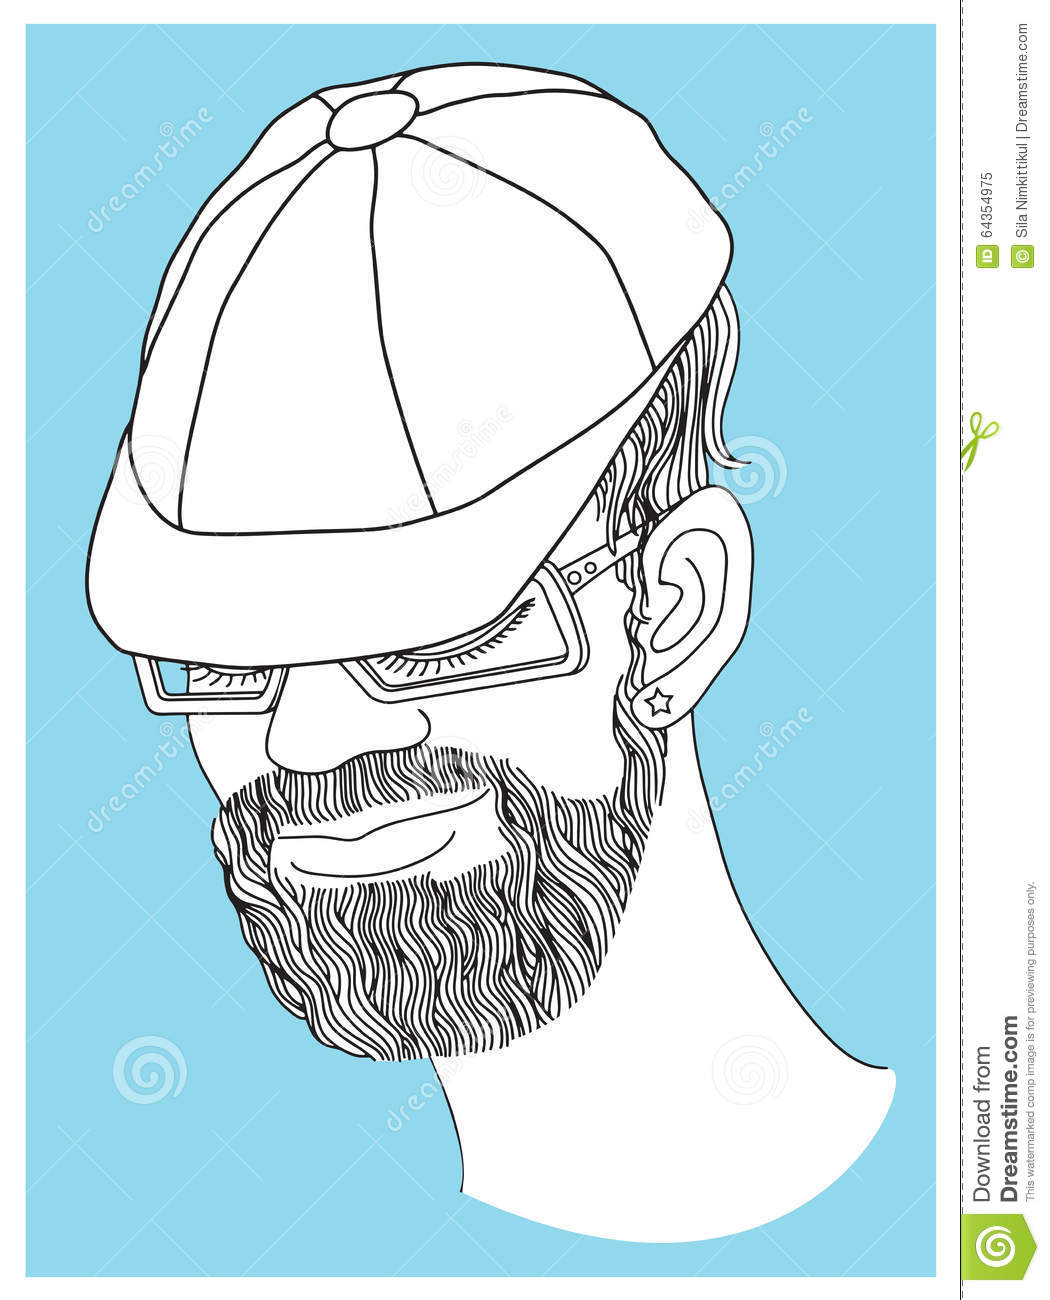 Product Design Line Art : Man portrait art line black and white stock vector image